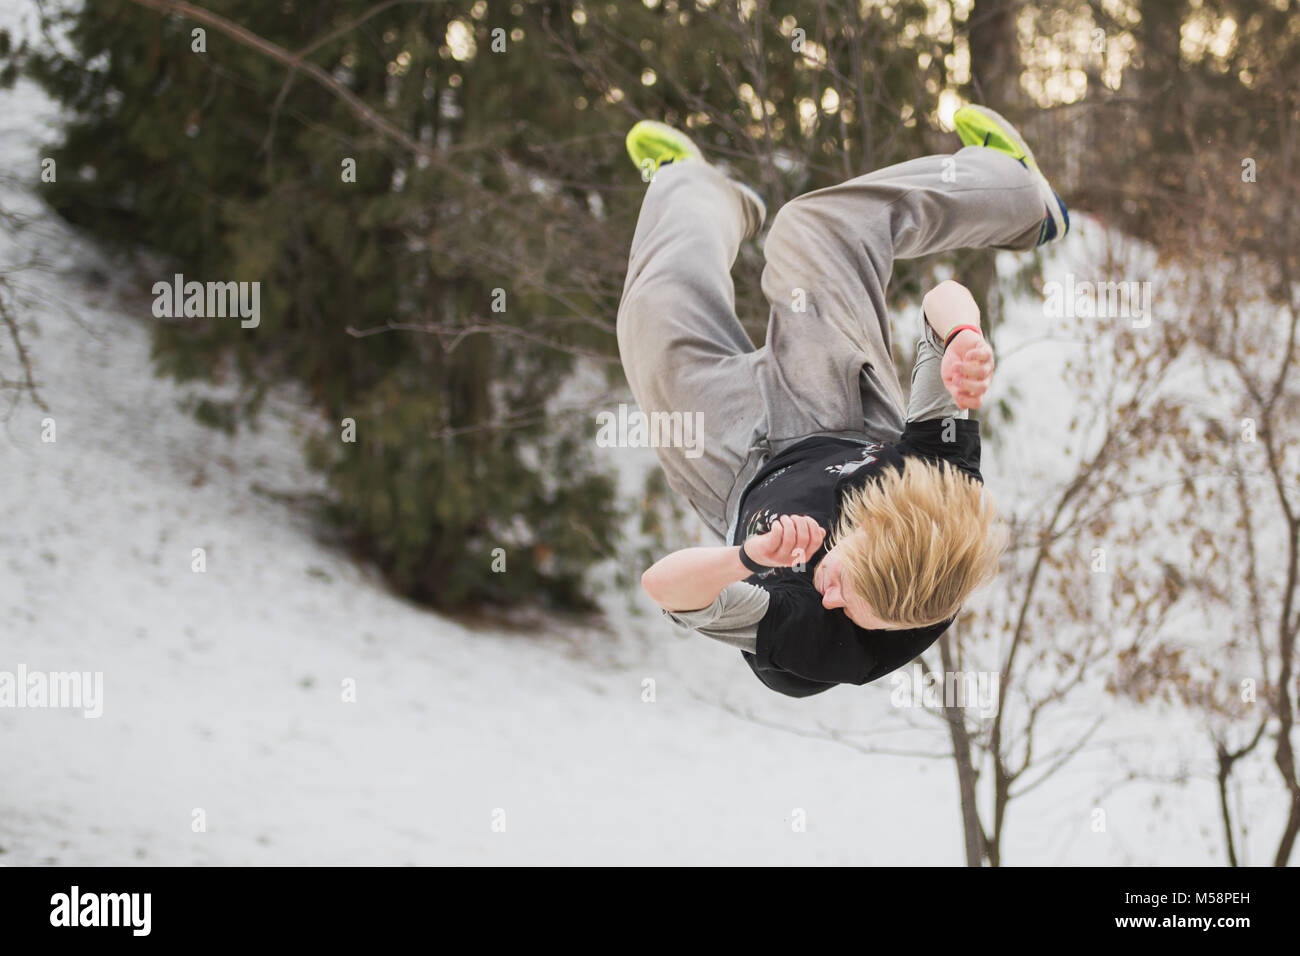 Saut parkour Backflip en hiver snow park - free-run Banque D'Images